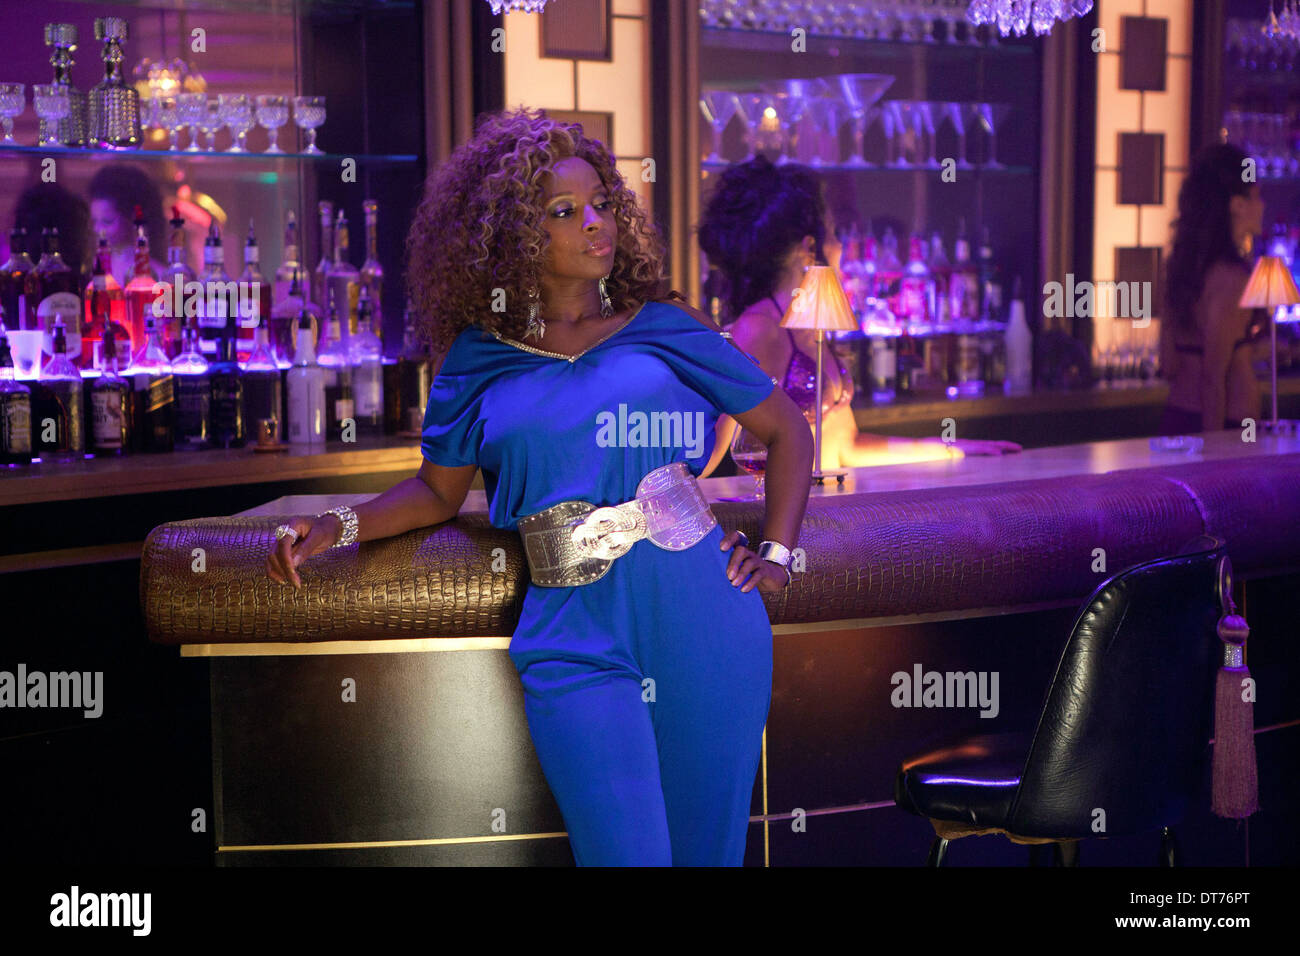 MARY J. BLIGE ROCK OF AGES (2012) - Stock Image